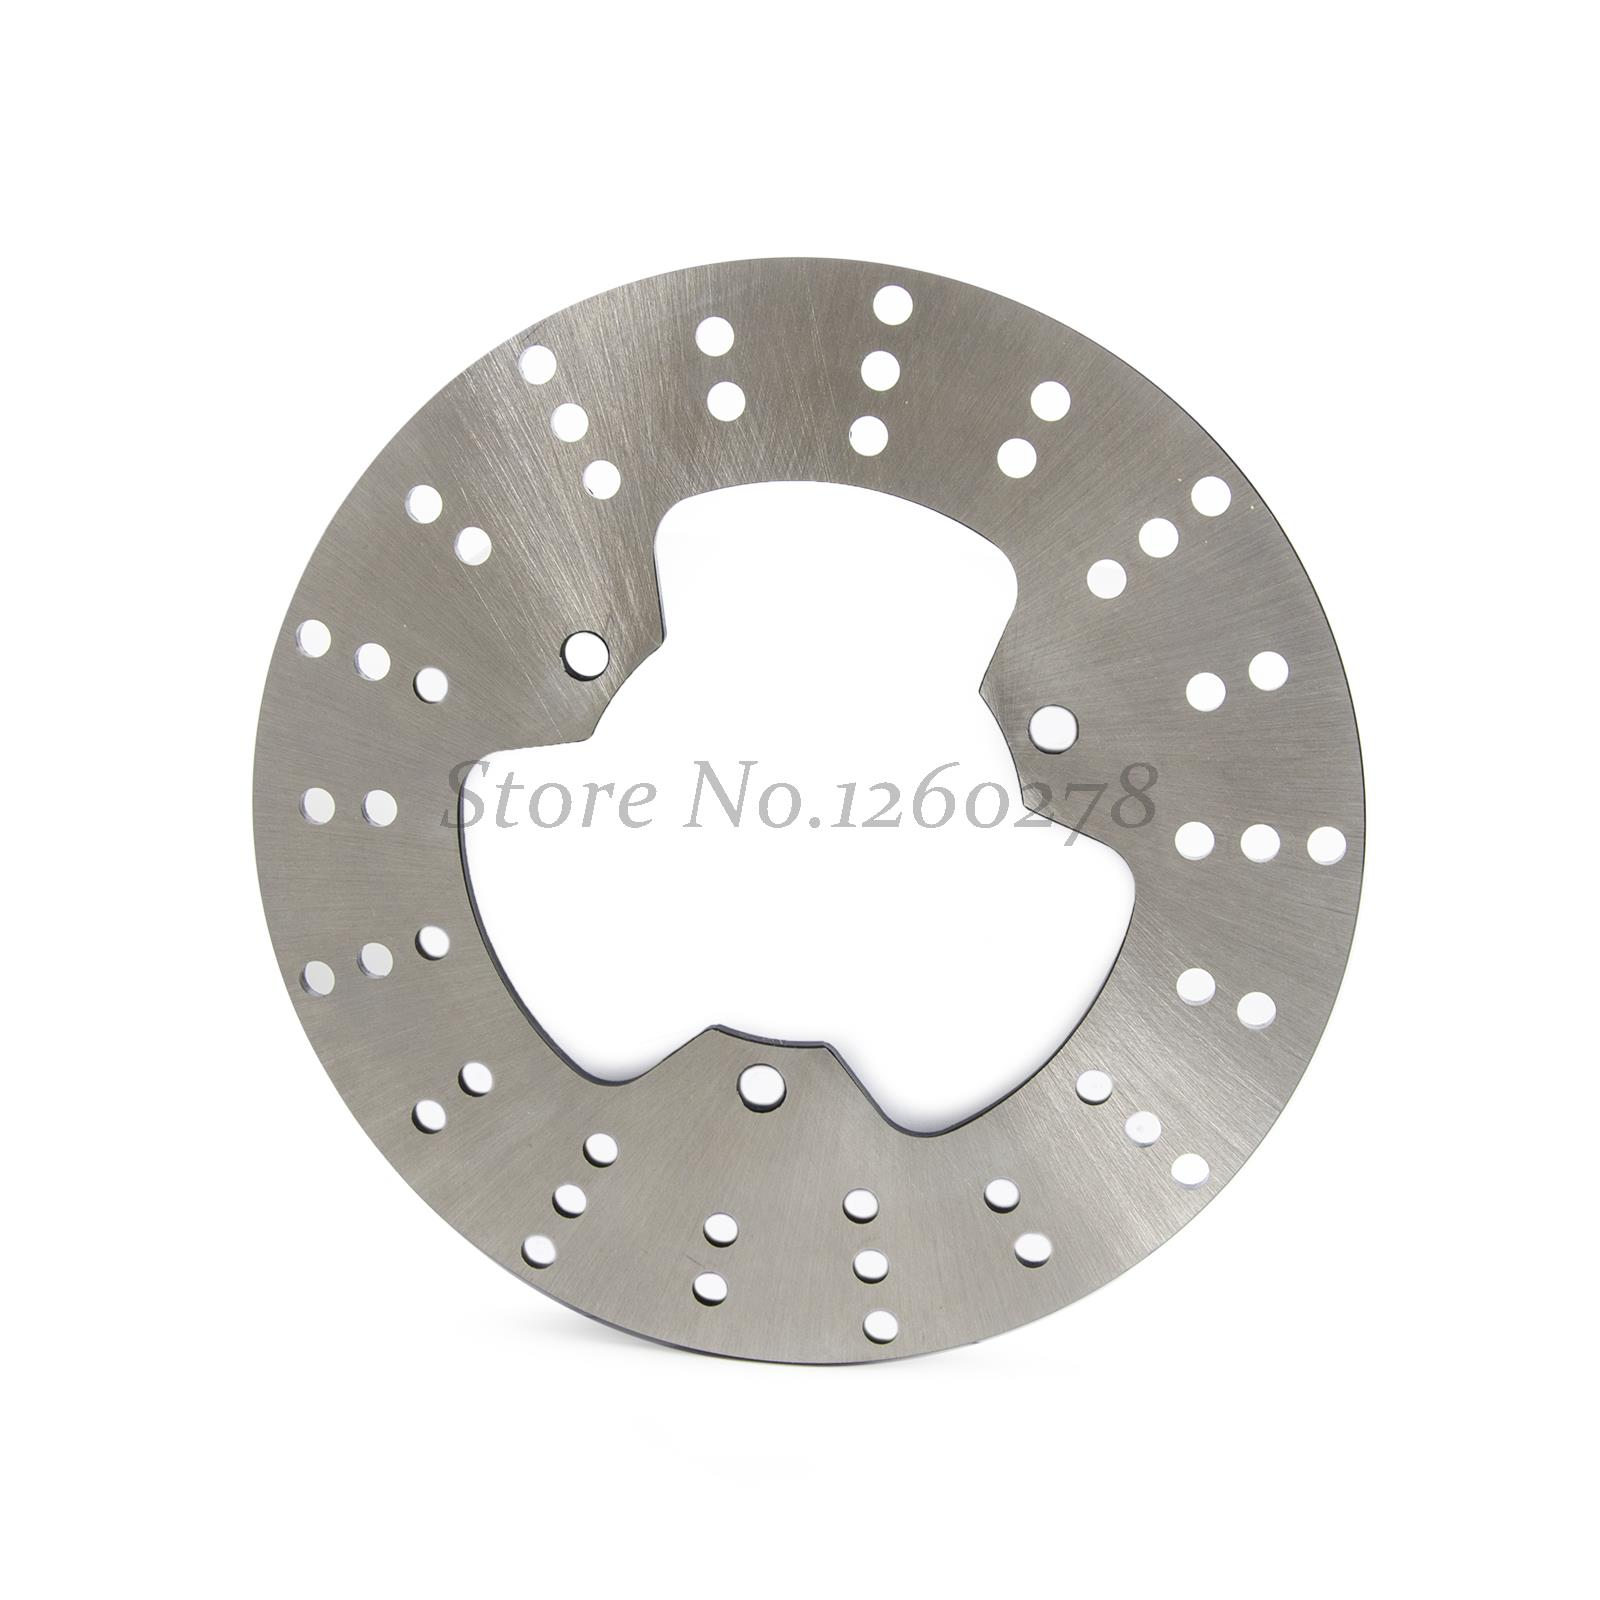 New Motorcycle Rear Rotor Brake Disc For Yamaha TZR 125 250 TDR250 FX 250 Zeal 3YX1